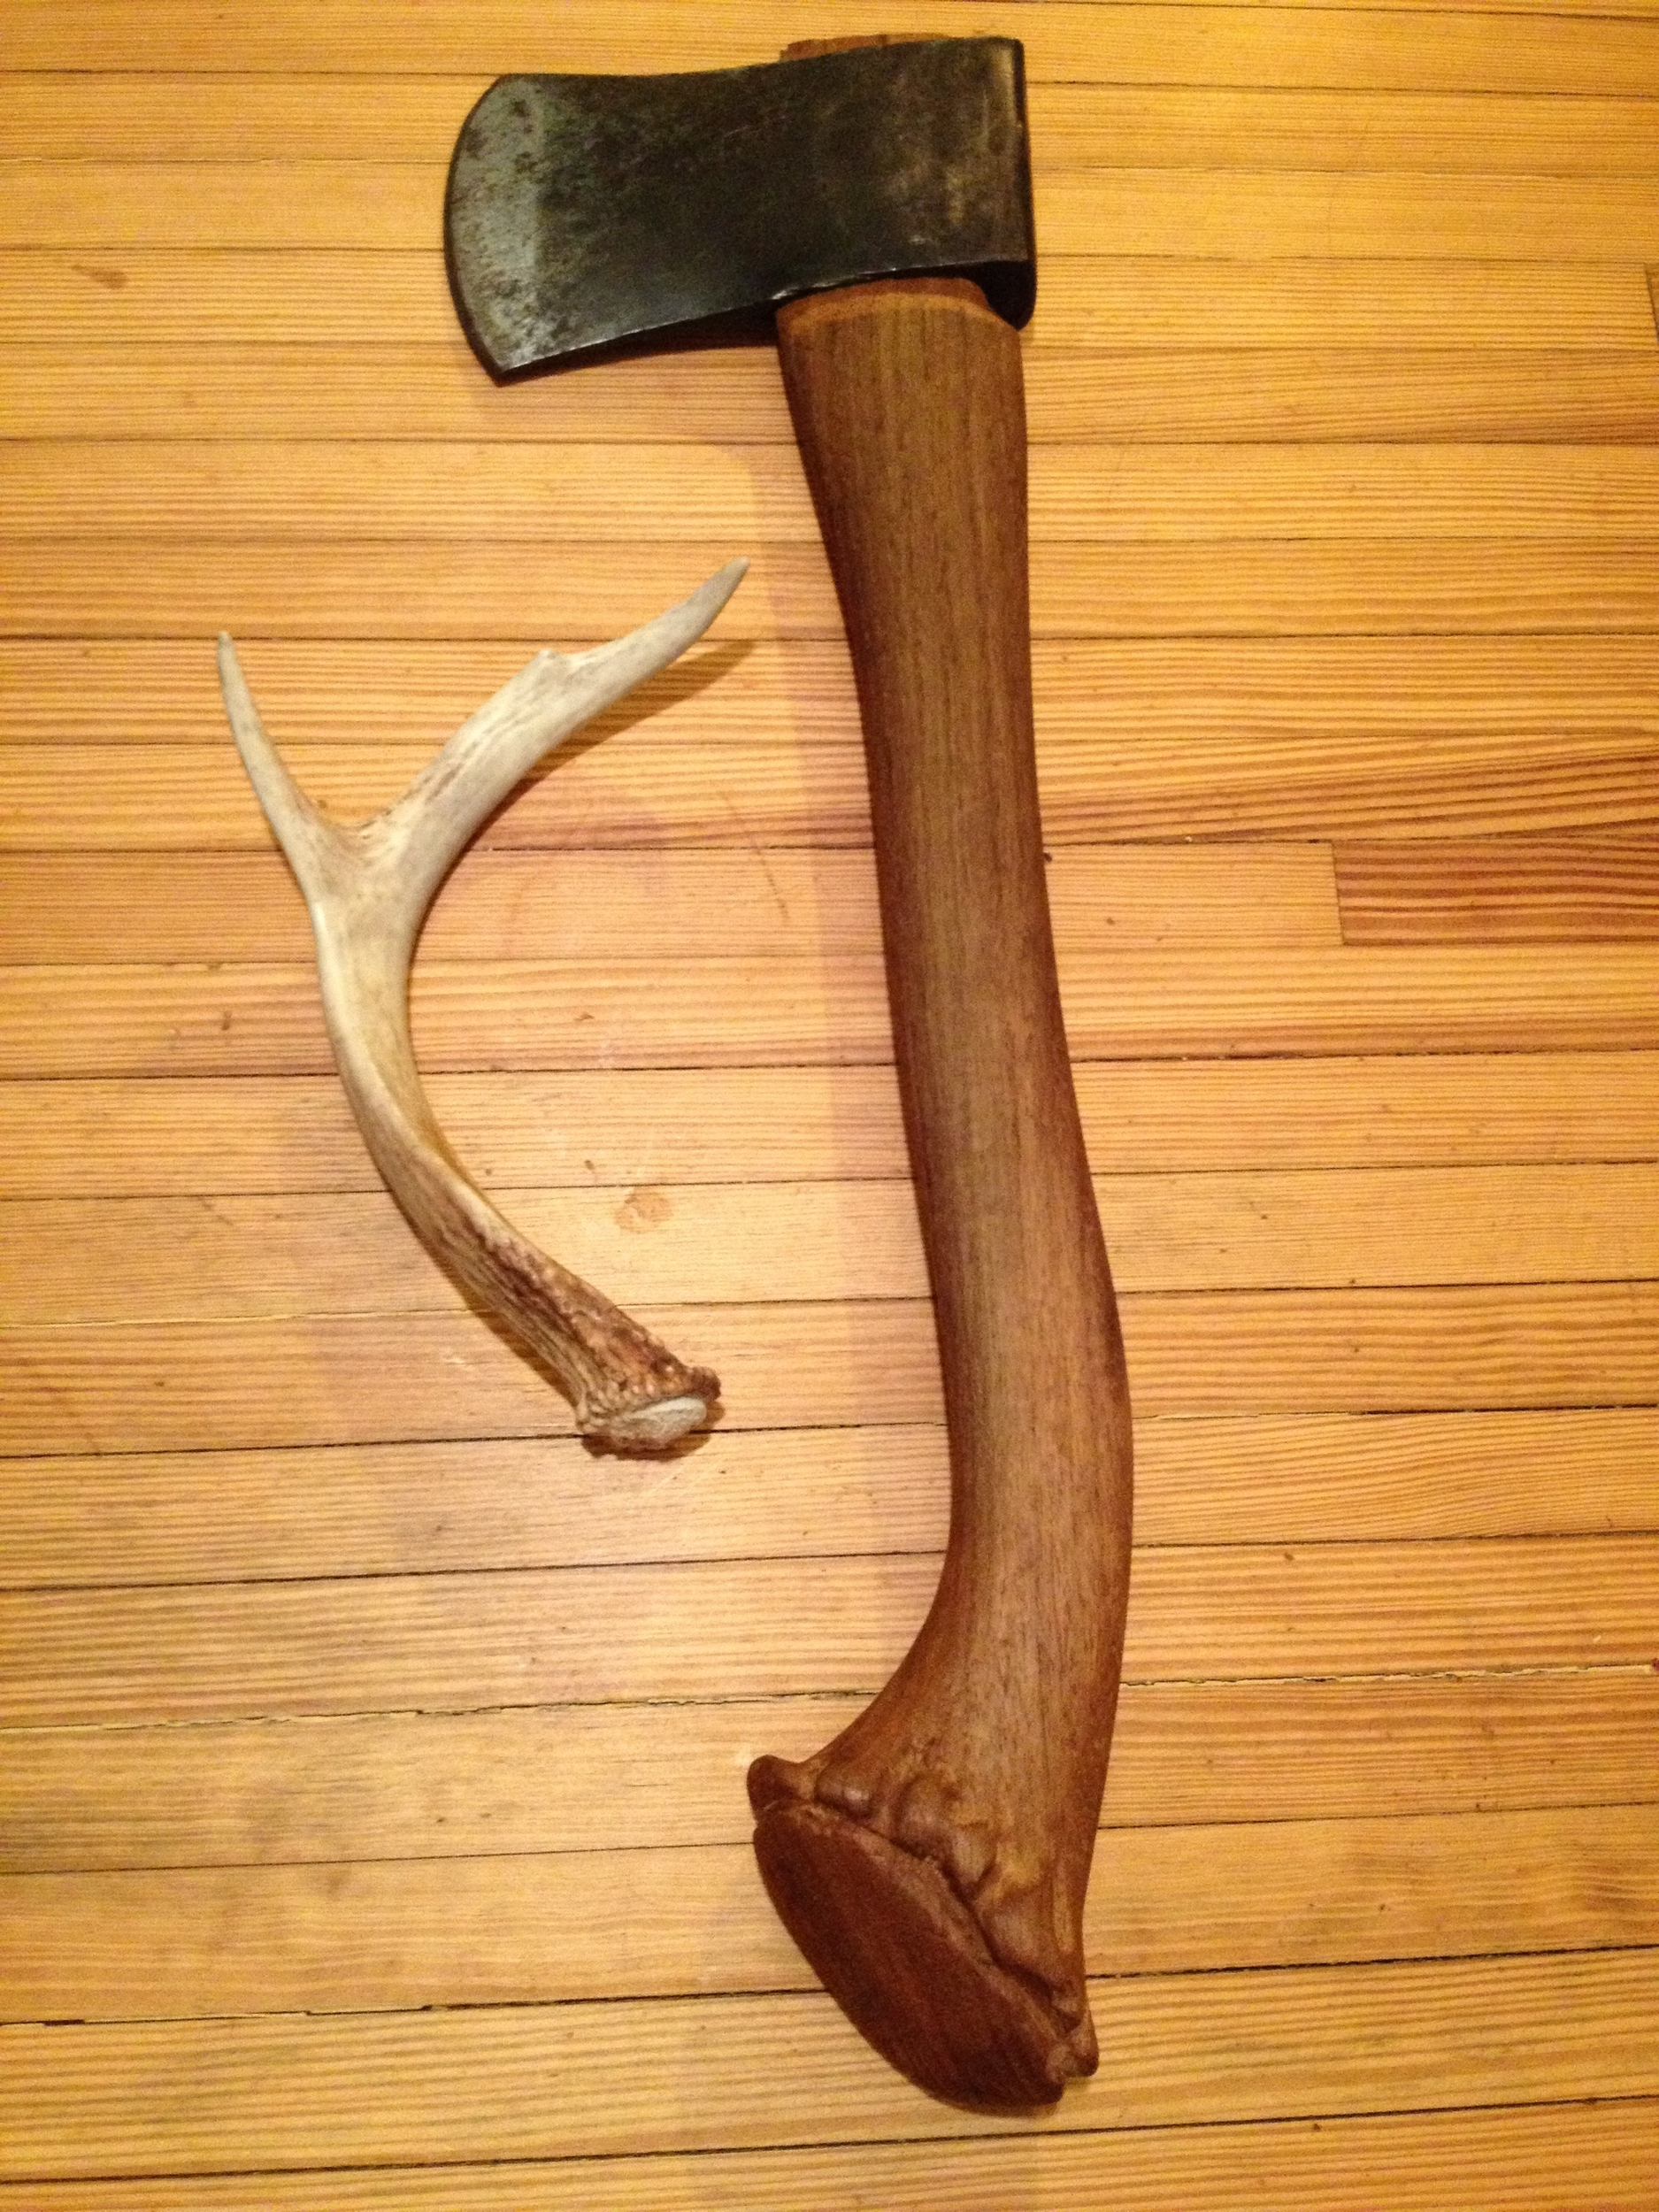 New hatchet handle with hand carved antler butt